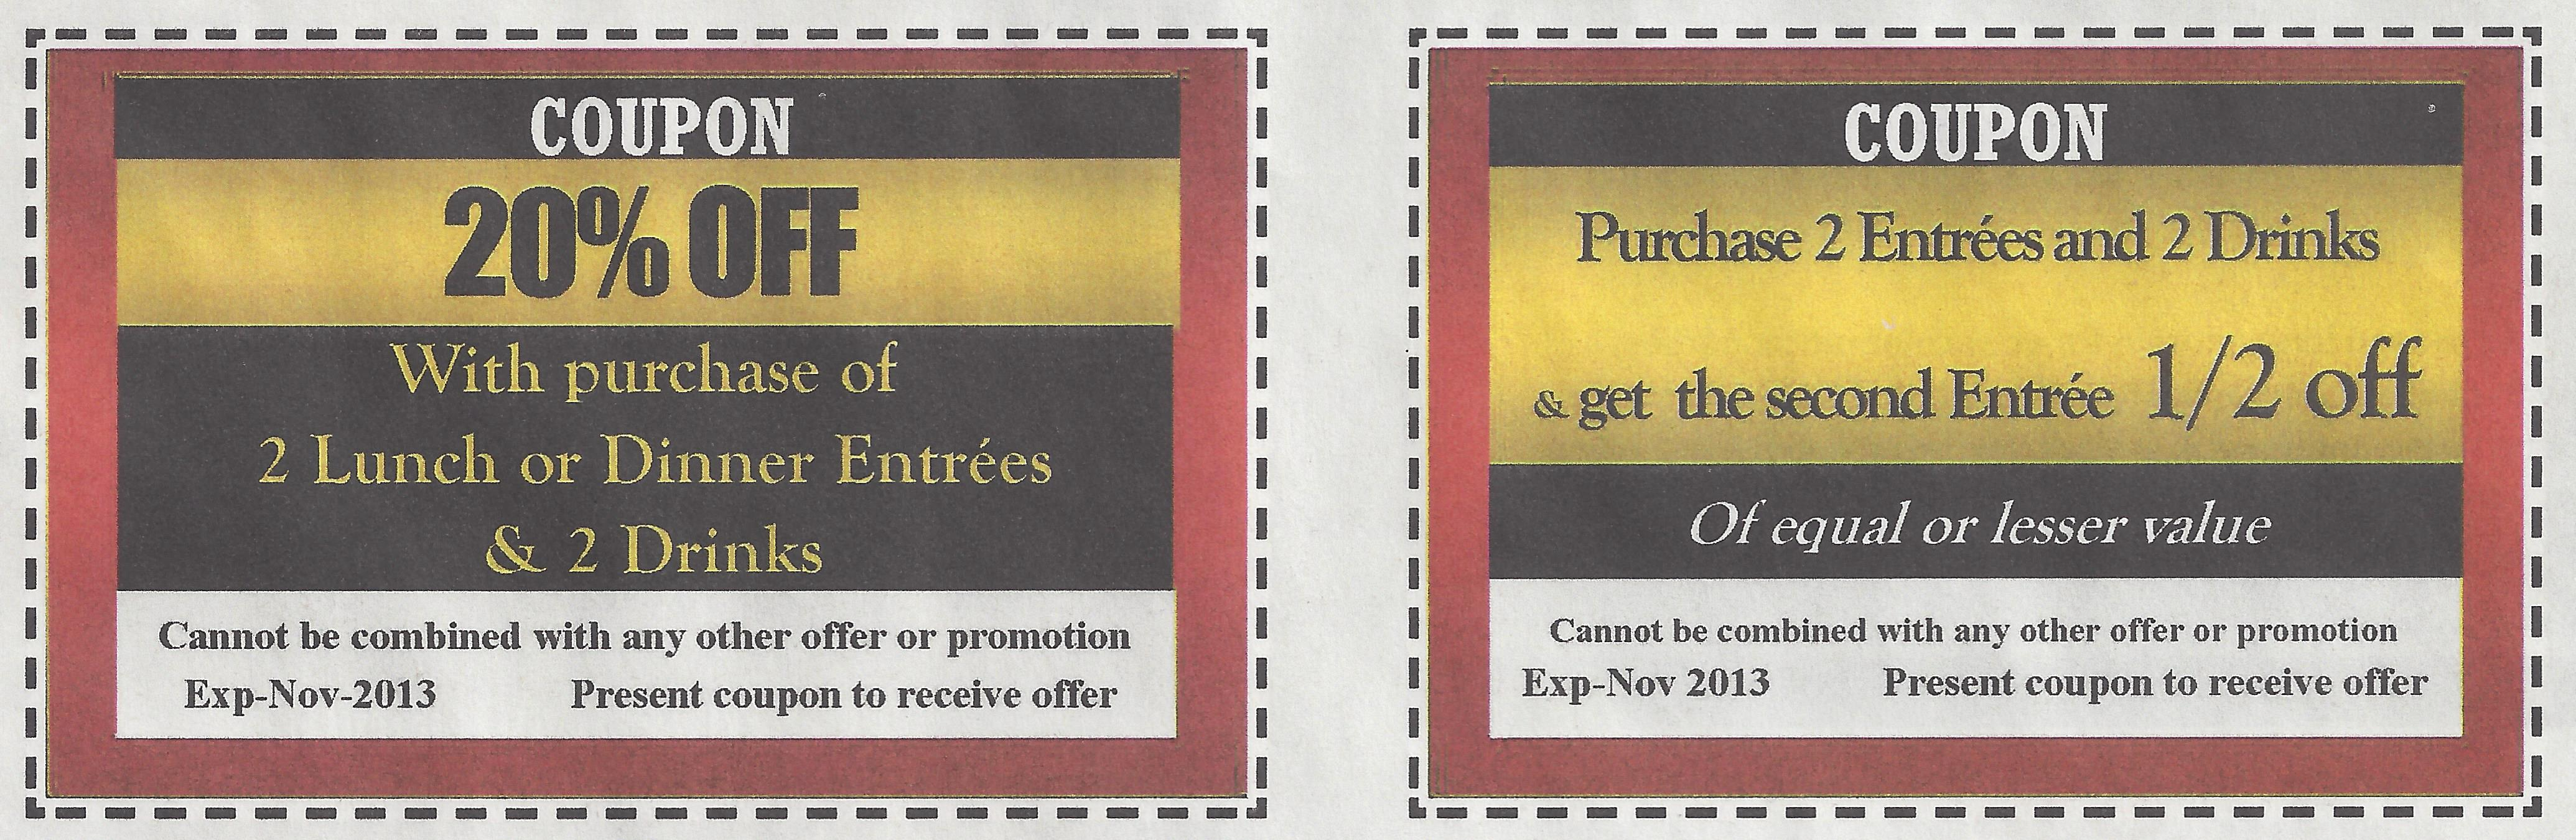 Diner coupons